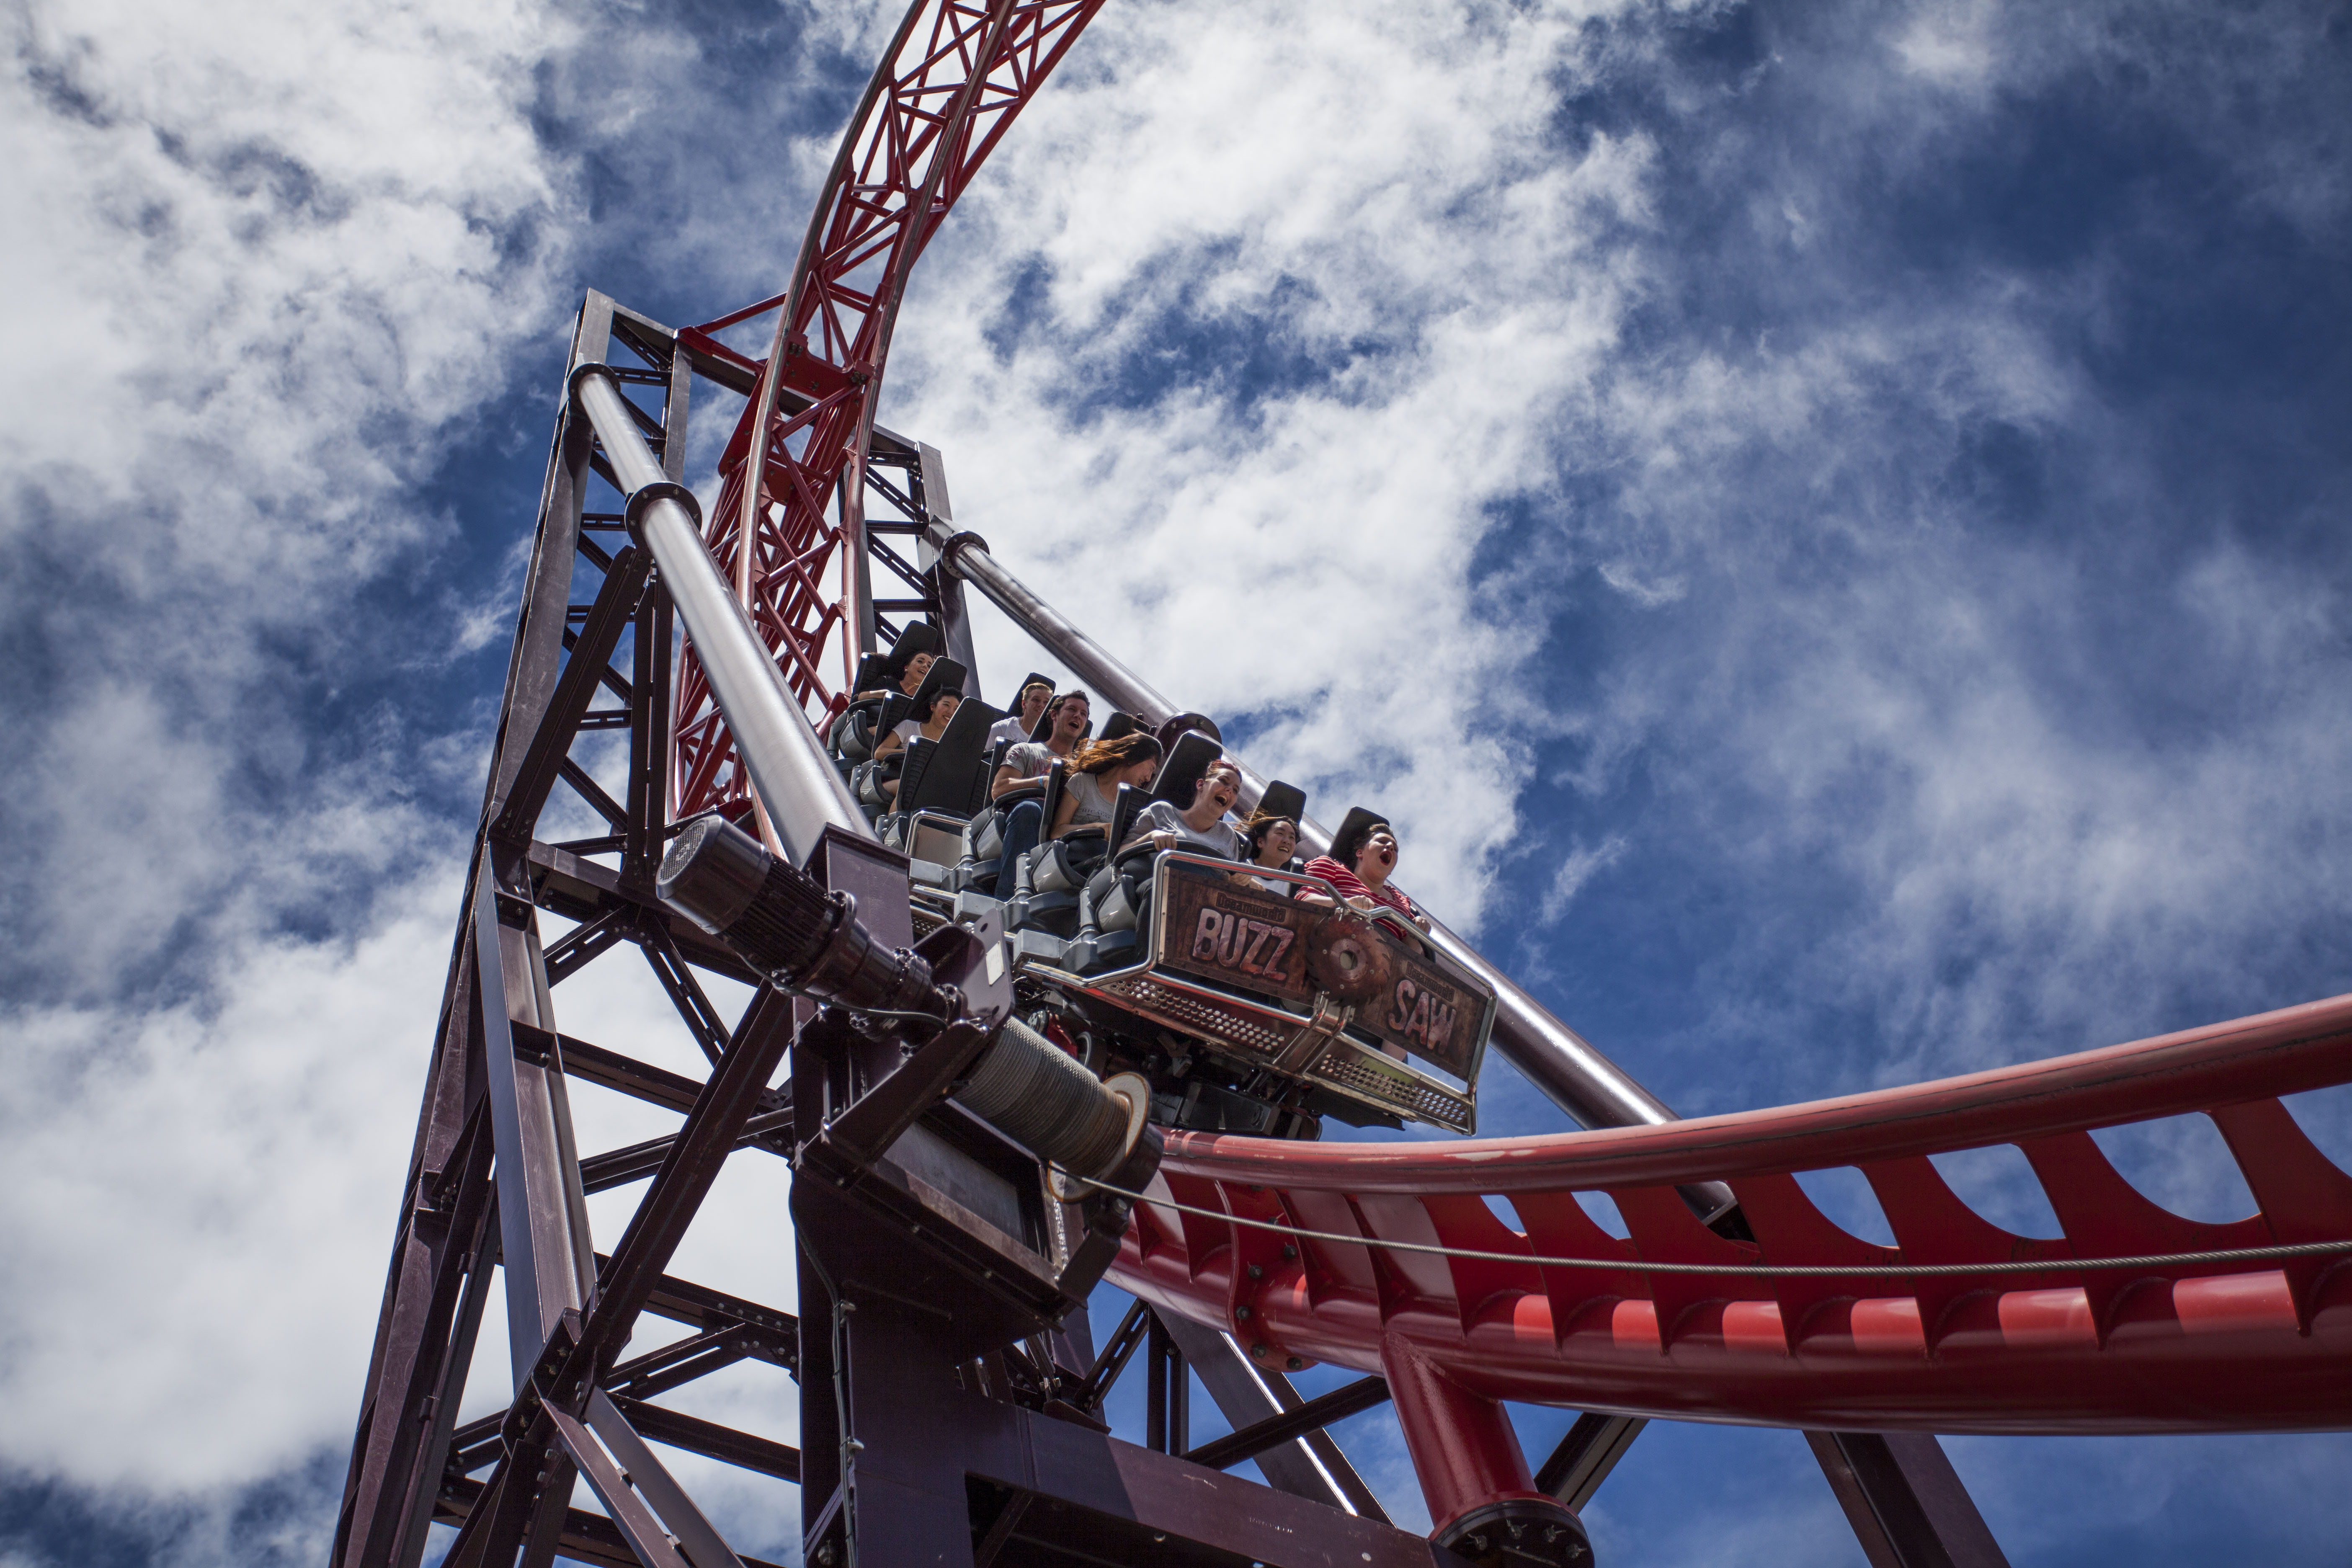 Gold Coast Motorsports >> BuzzSaw (roller coaster) - Wikiwand